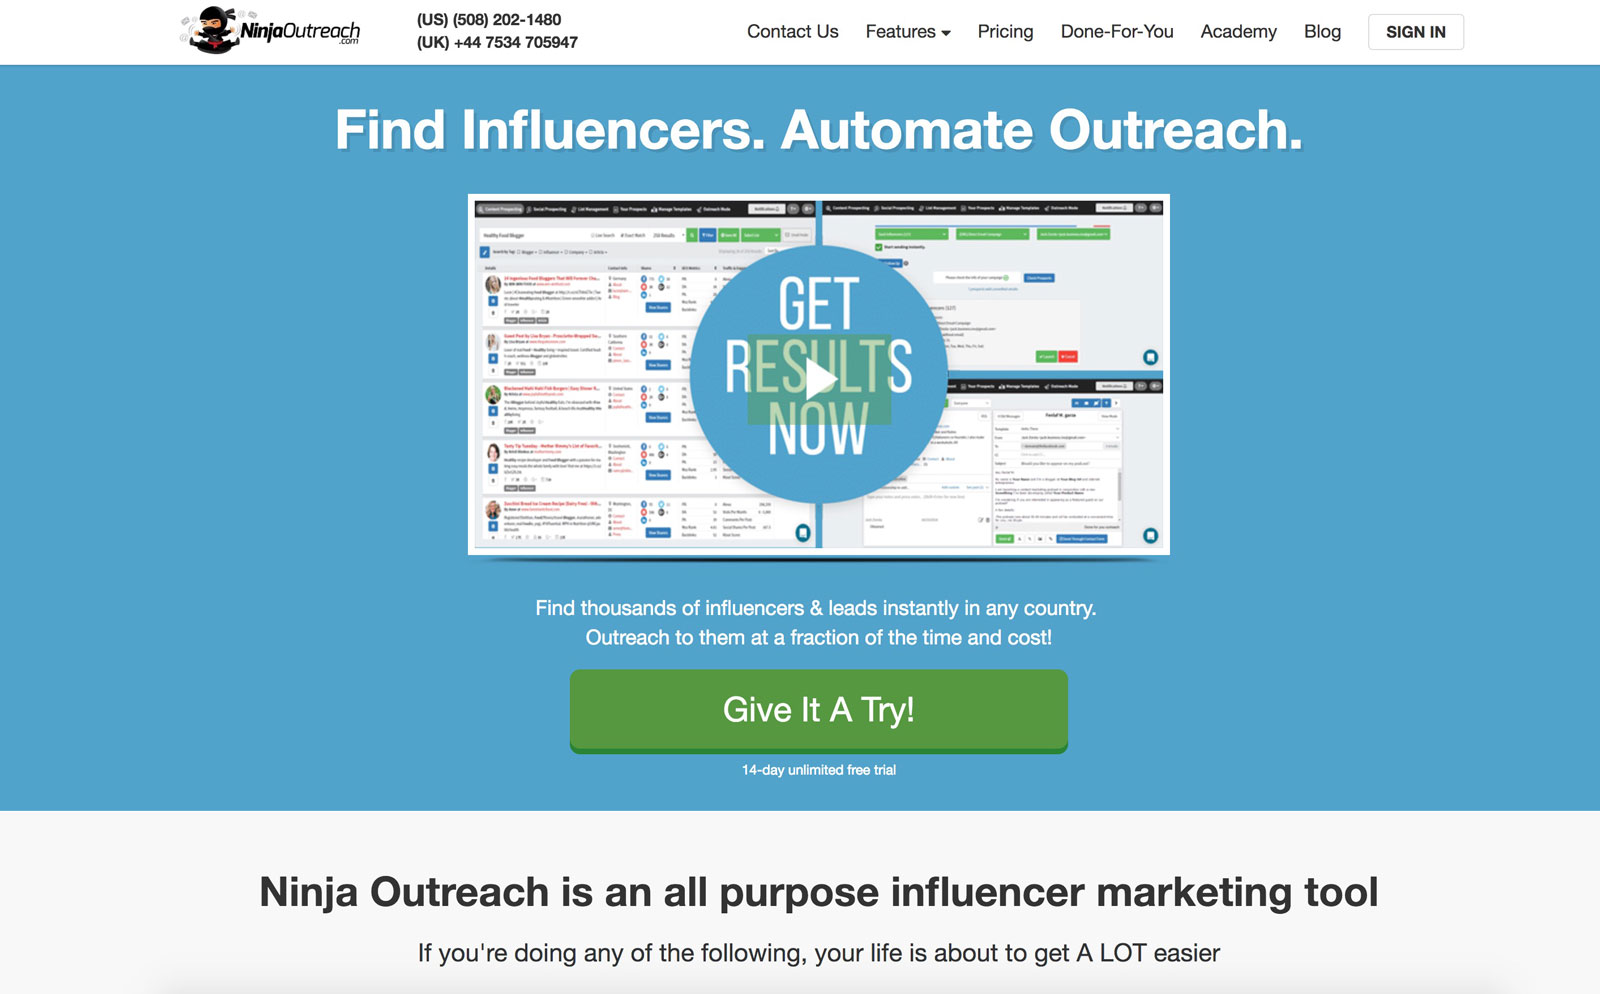 Ninja Outreach is the go-to tool for finding influencers | Top 5 Influencer Marketing Tools for Content Promotion